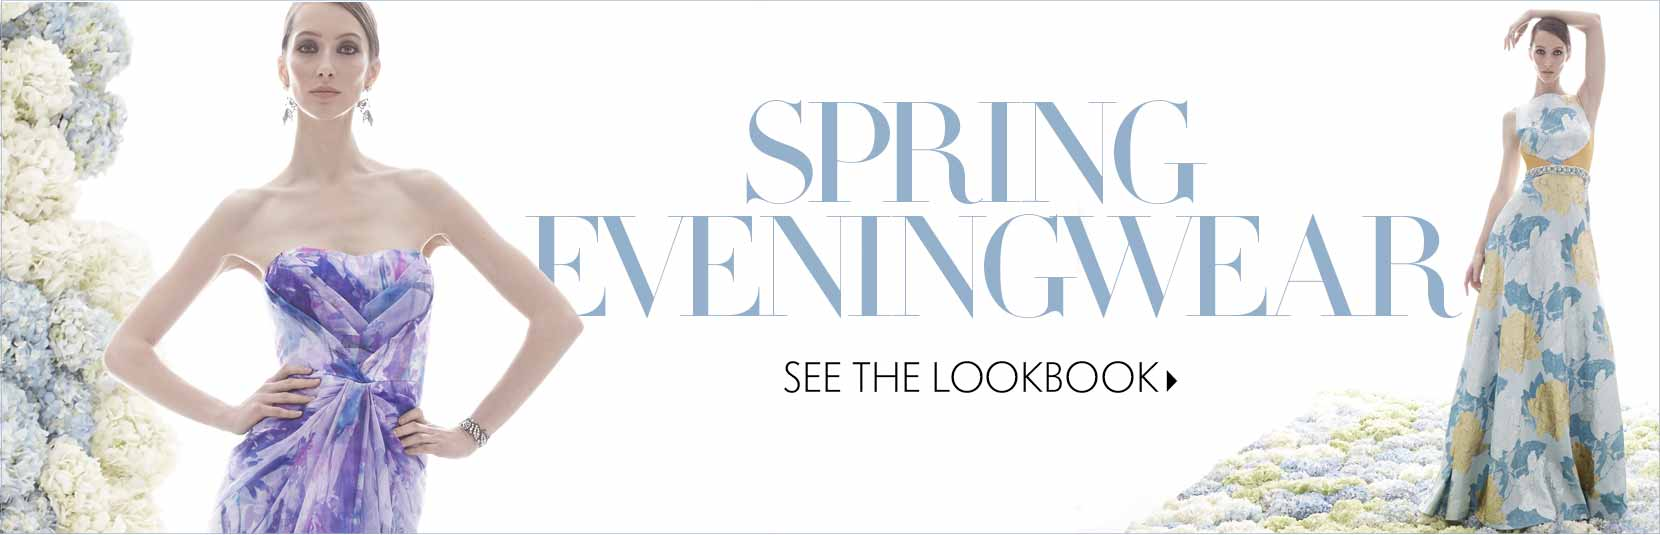 Eveningwear Lookbook